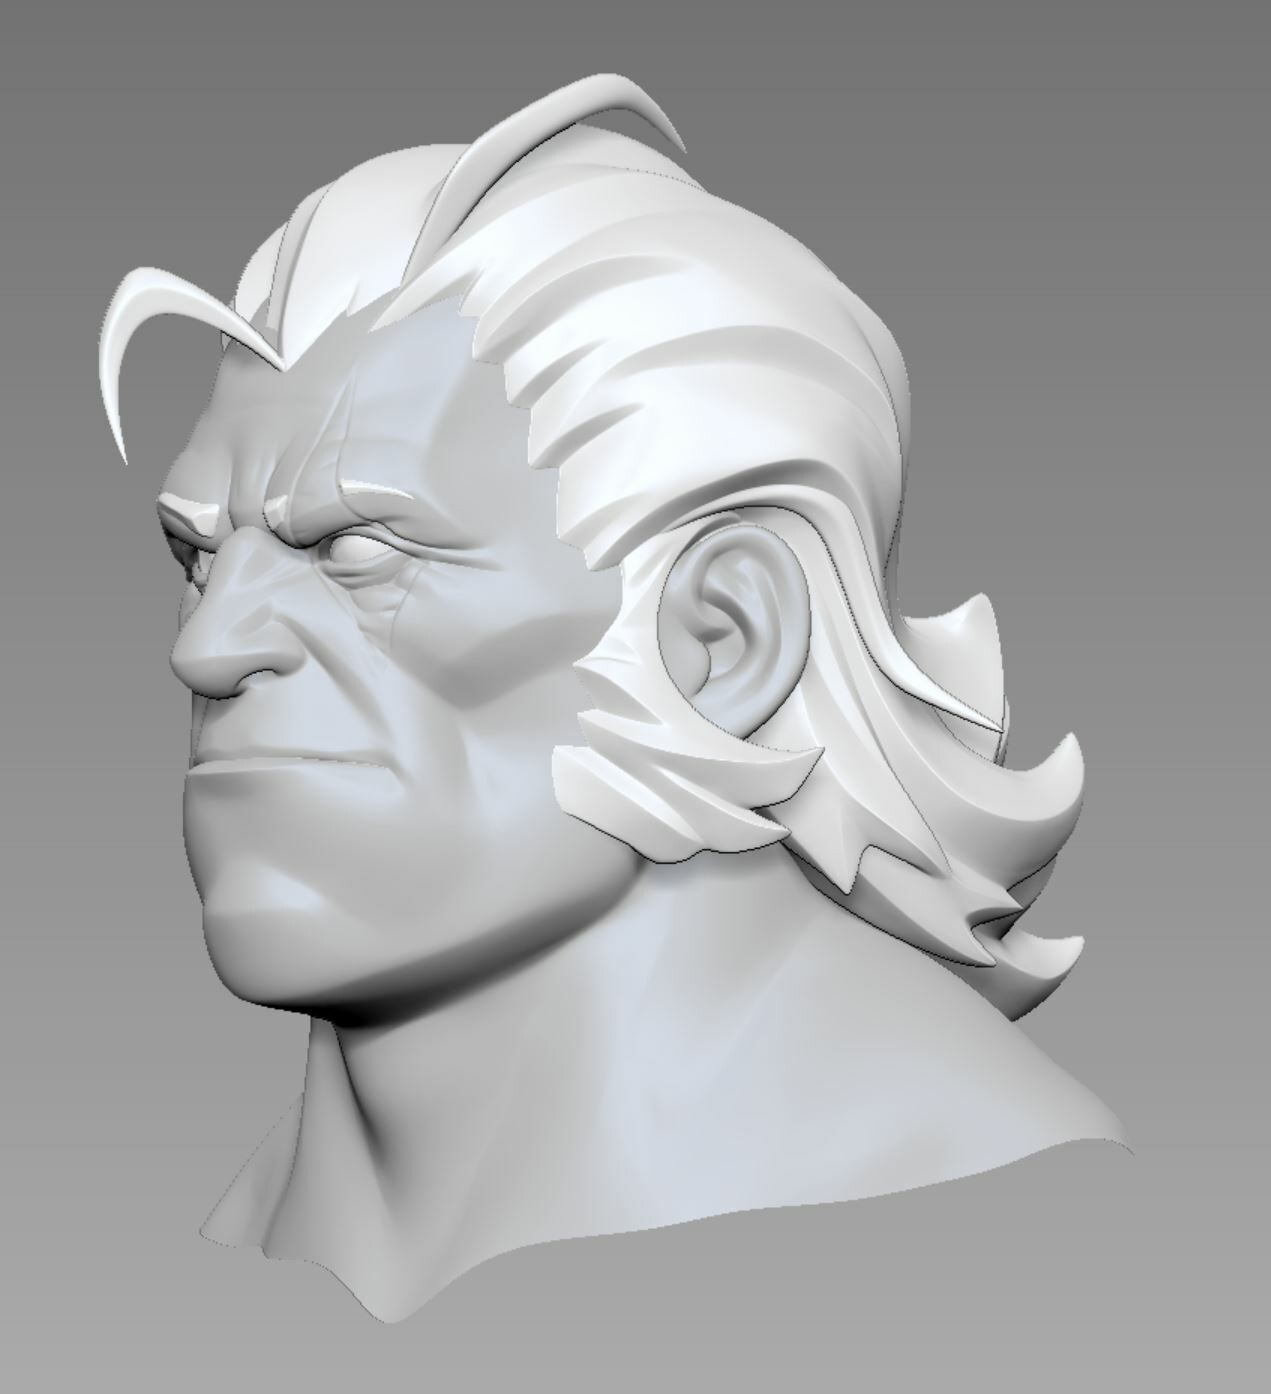 Even if the beard and mustache hide most of his face, I wanted it to look good and make sense. I used the younger Reinhardt as reference